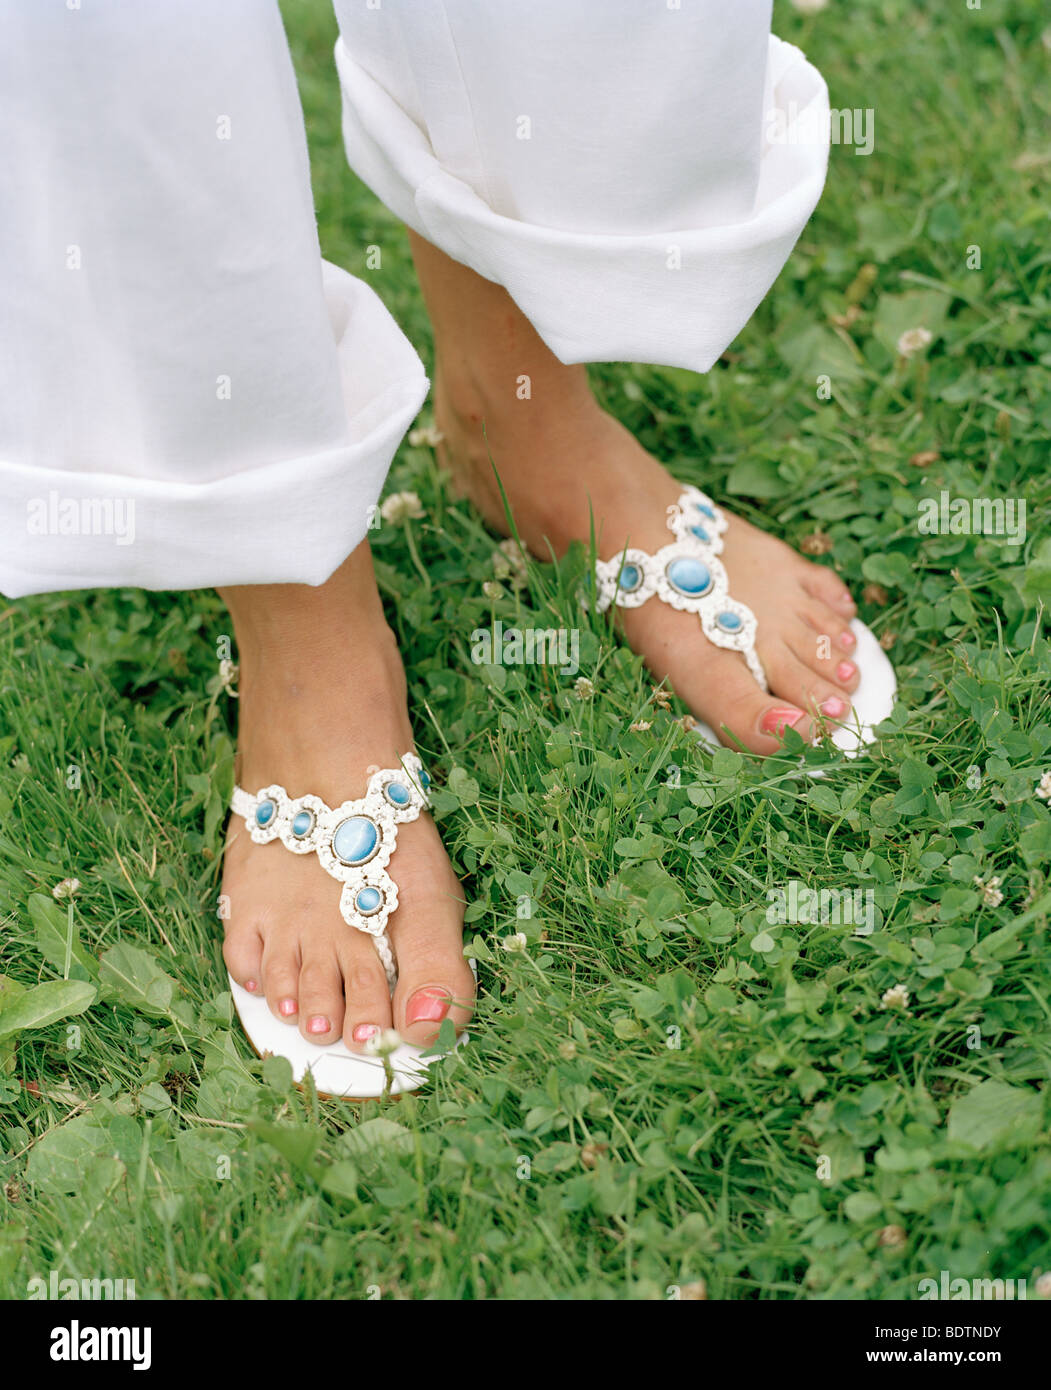 Feet wearing sandals - Stock Image